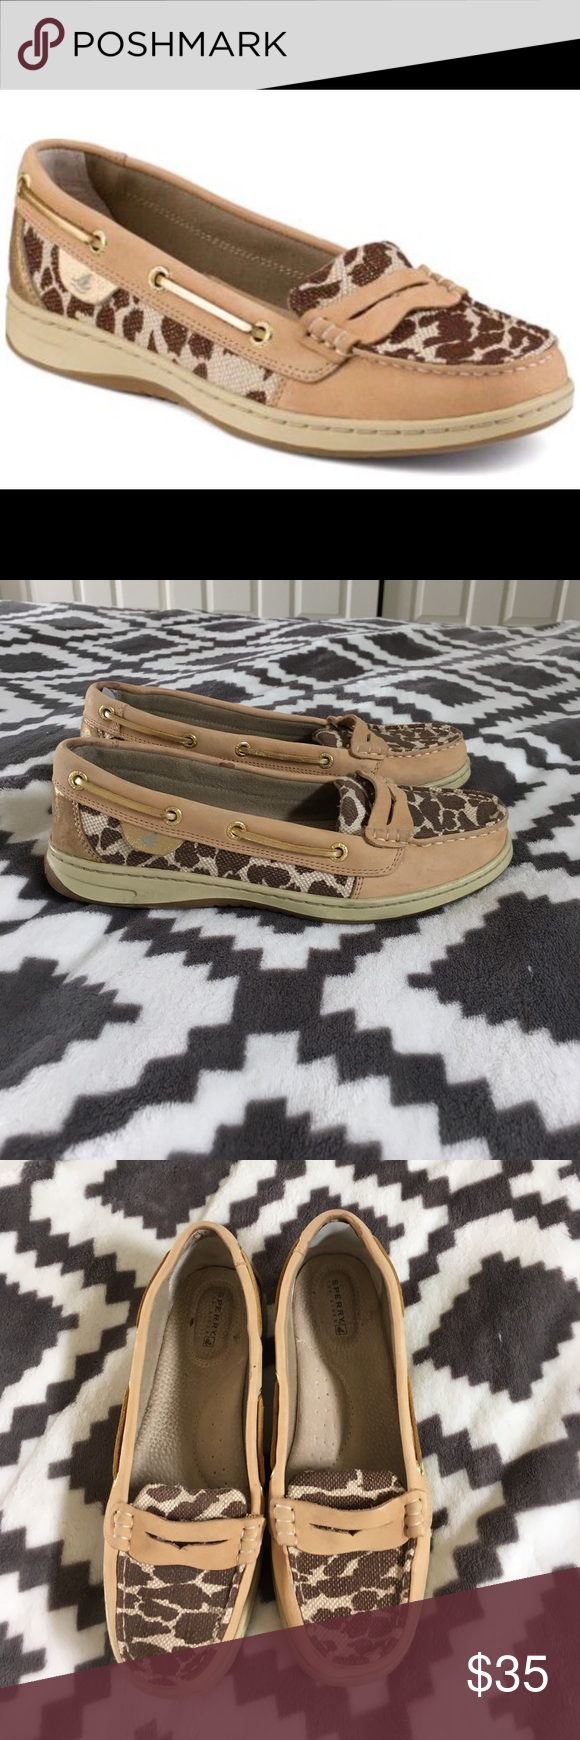 Sperry top sides Penny loafer In great shape worn just a few times perfect summer shoe women's 8.5 Sperry Top-Sider Shoes